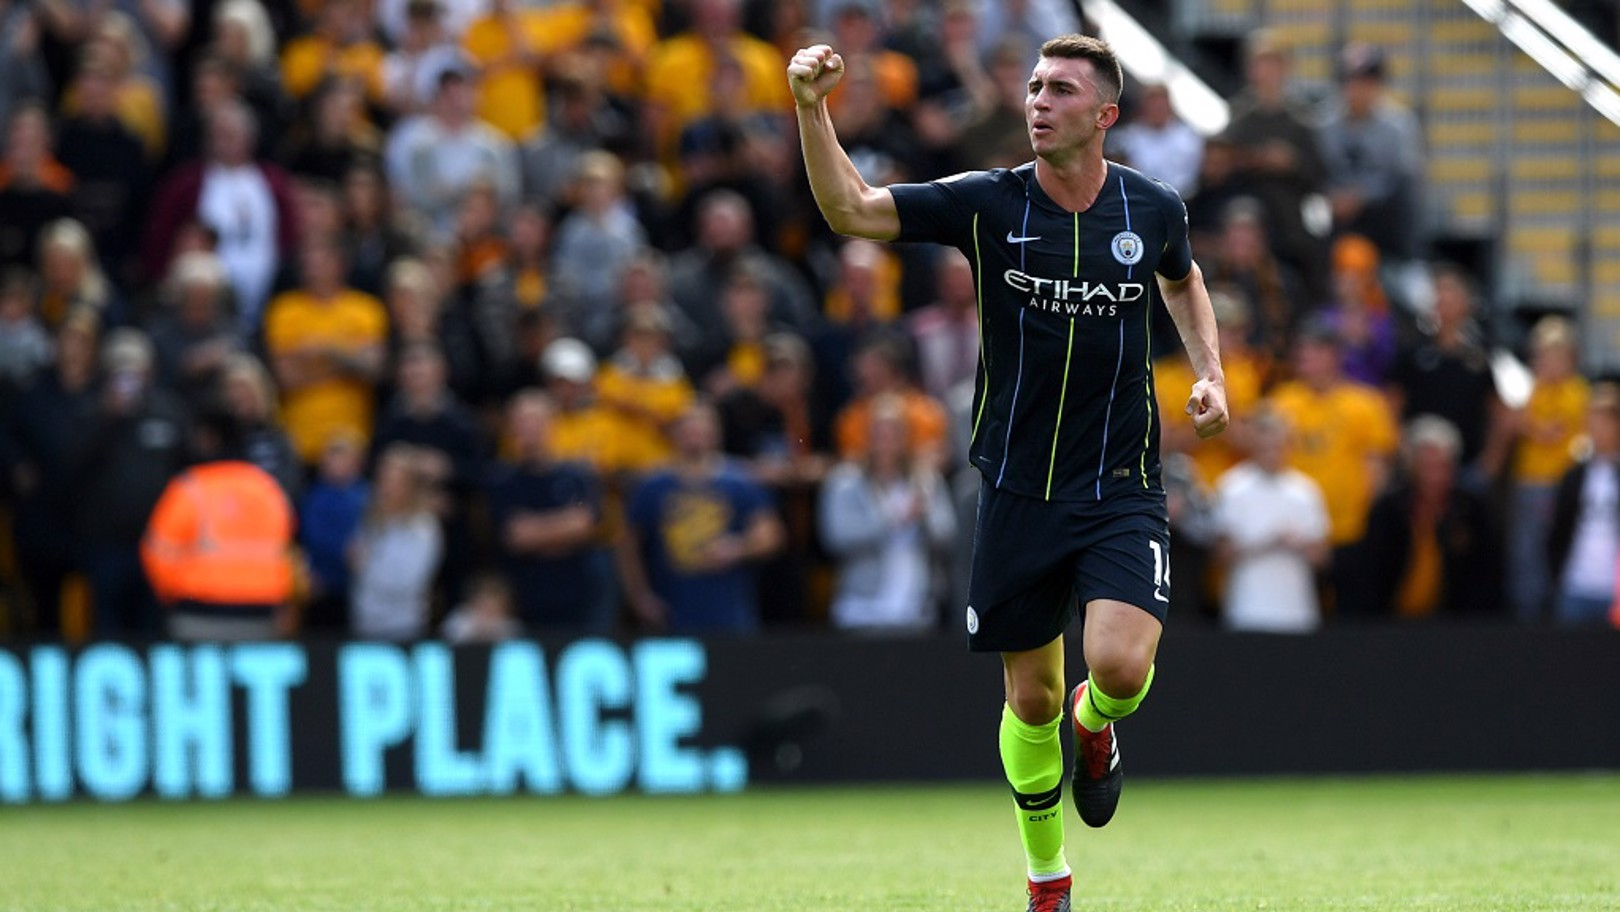 IMPRESSIVE: Aymeric Laporte has begun the campaign well